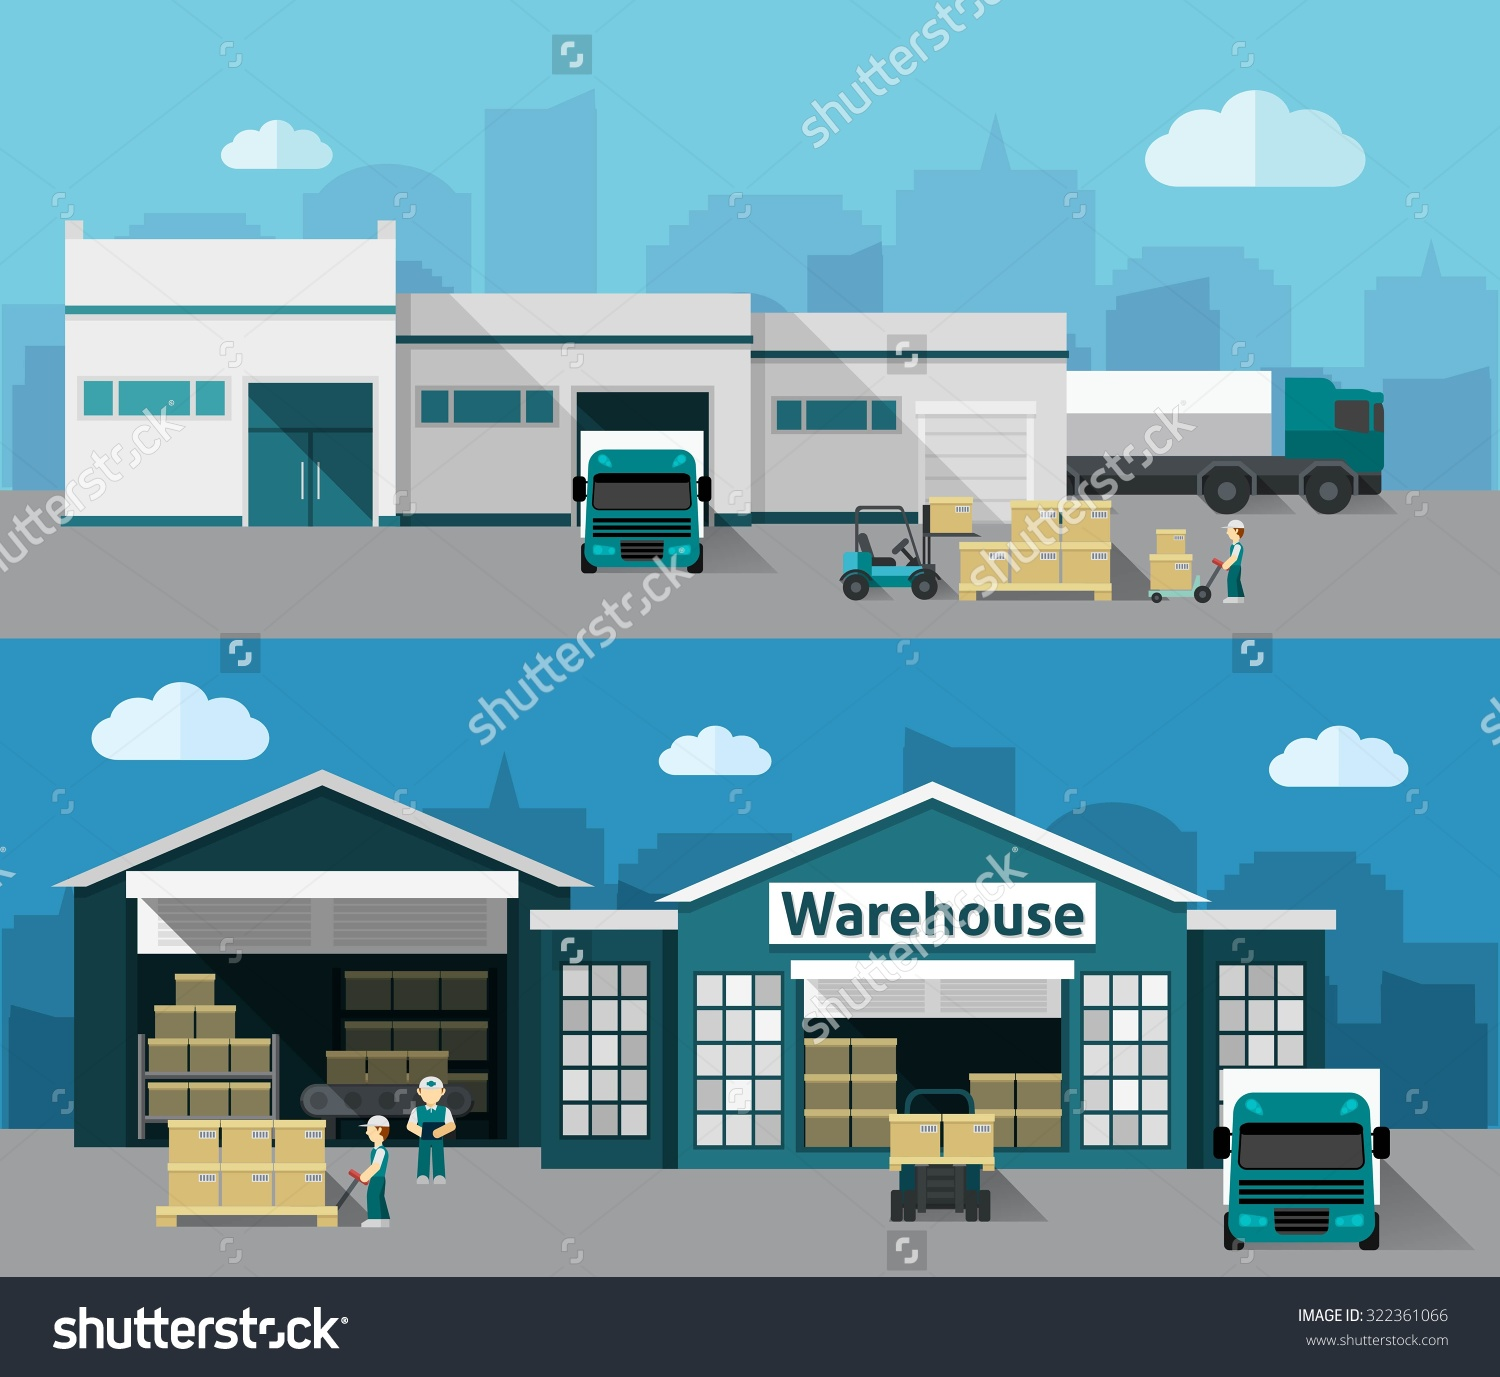 Warehouse Building Shipping Process Flat Horizontal Stock Vector.